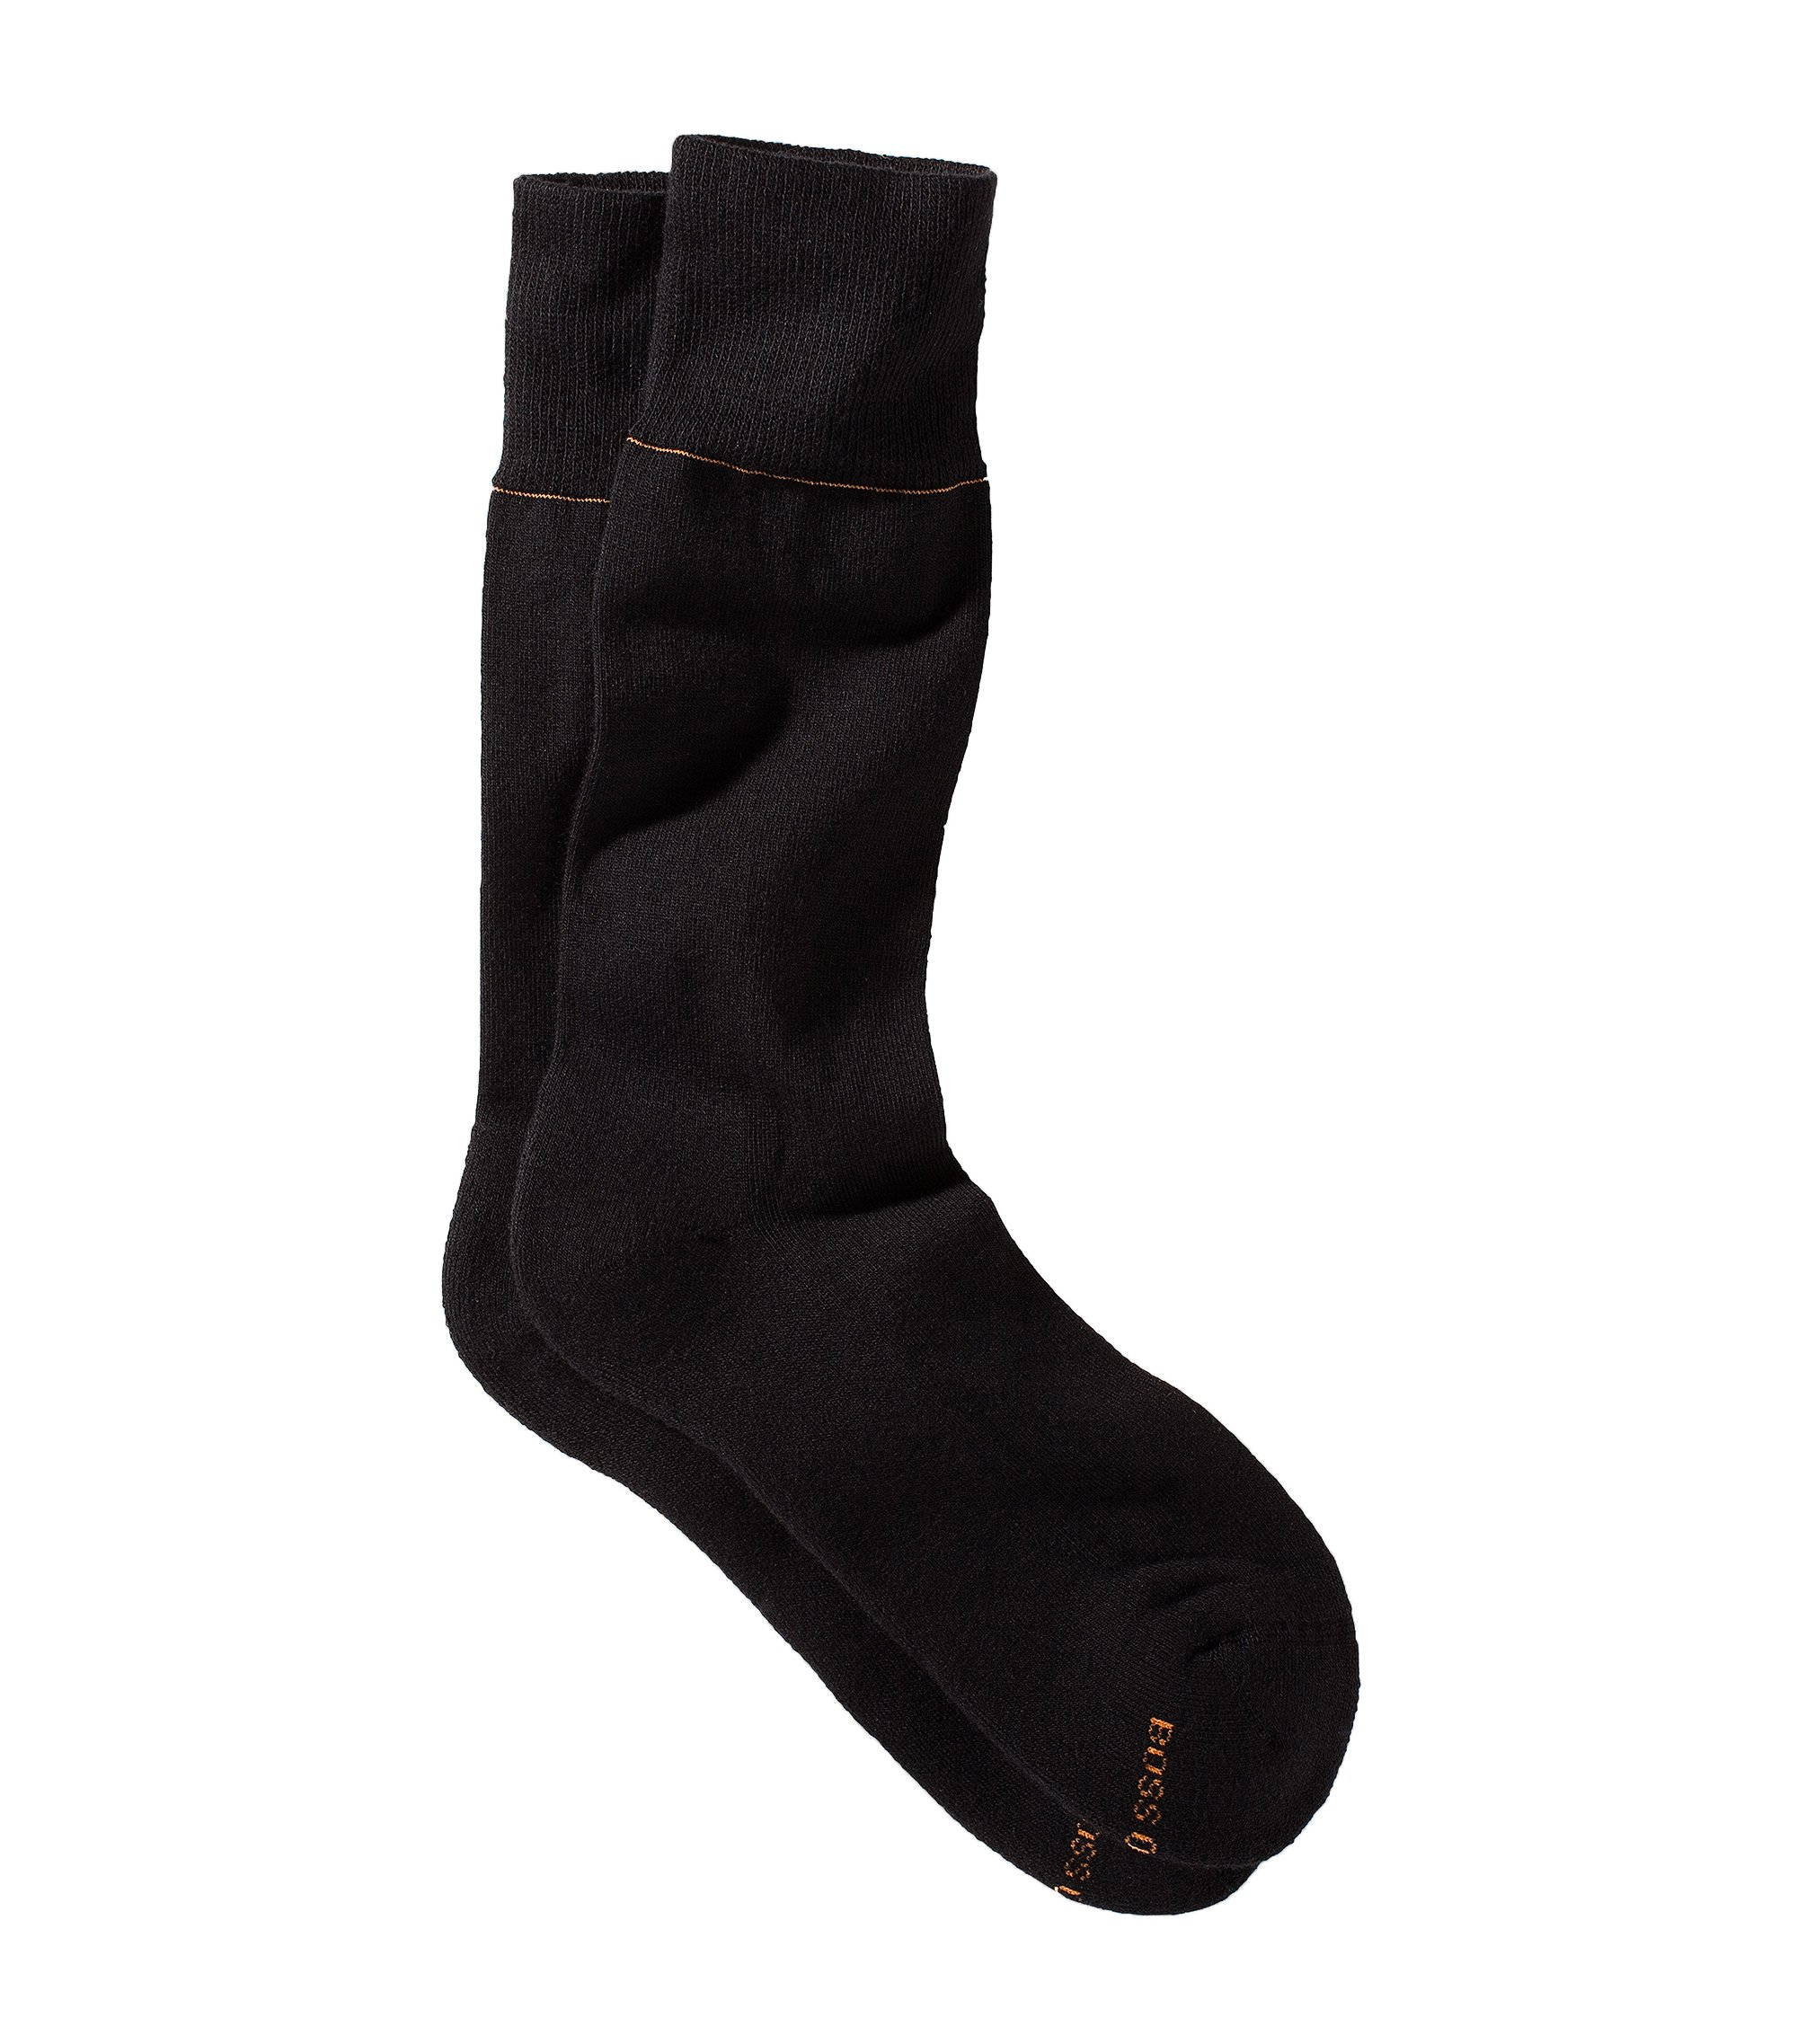 Cotton socks 'Axel RS Uni', Black